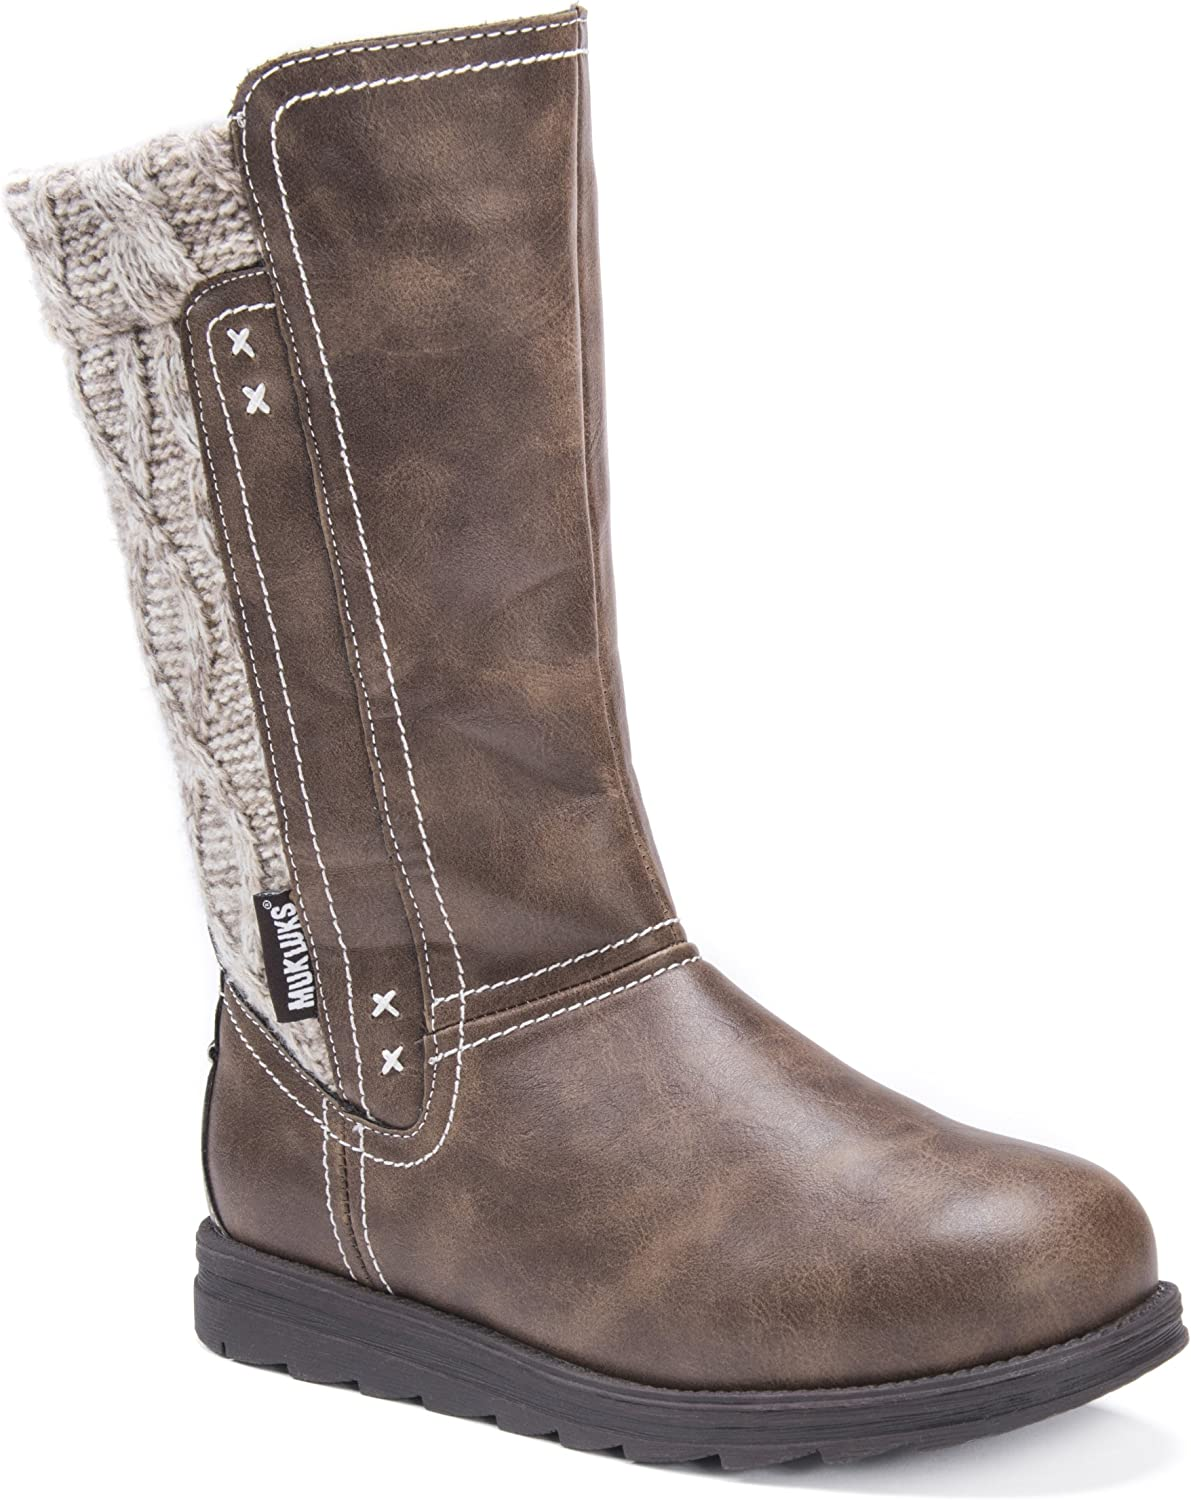 MUK LUKS Womens Women's Stacy Boots- Brown Fashion Boot